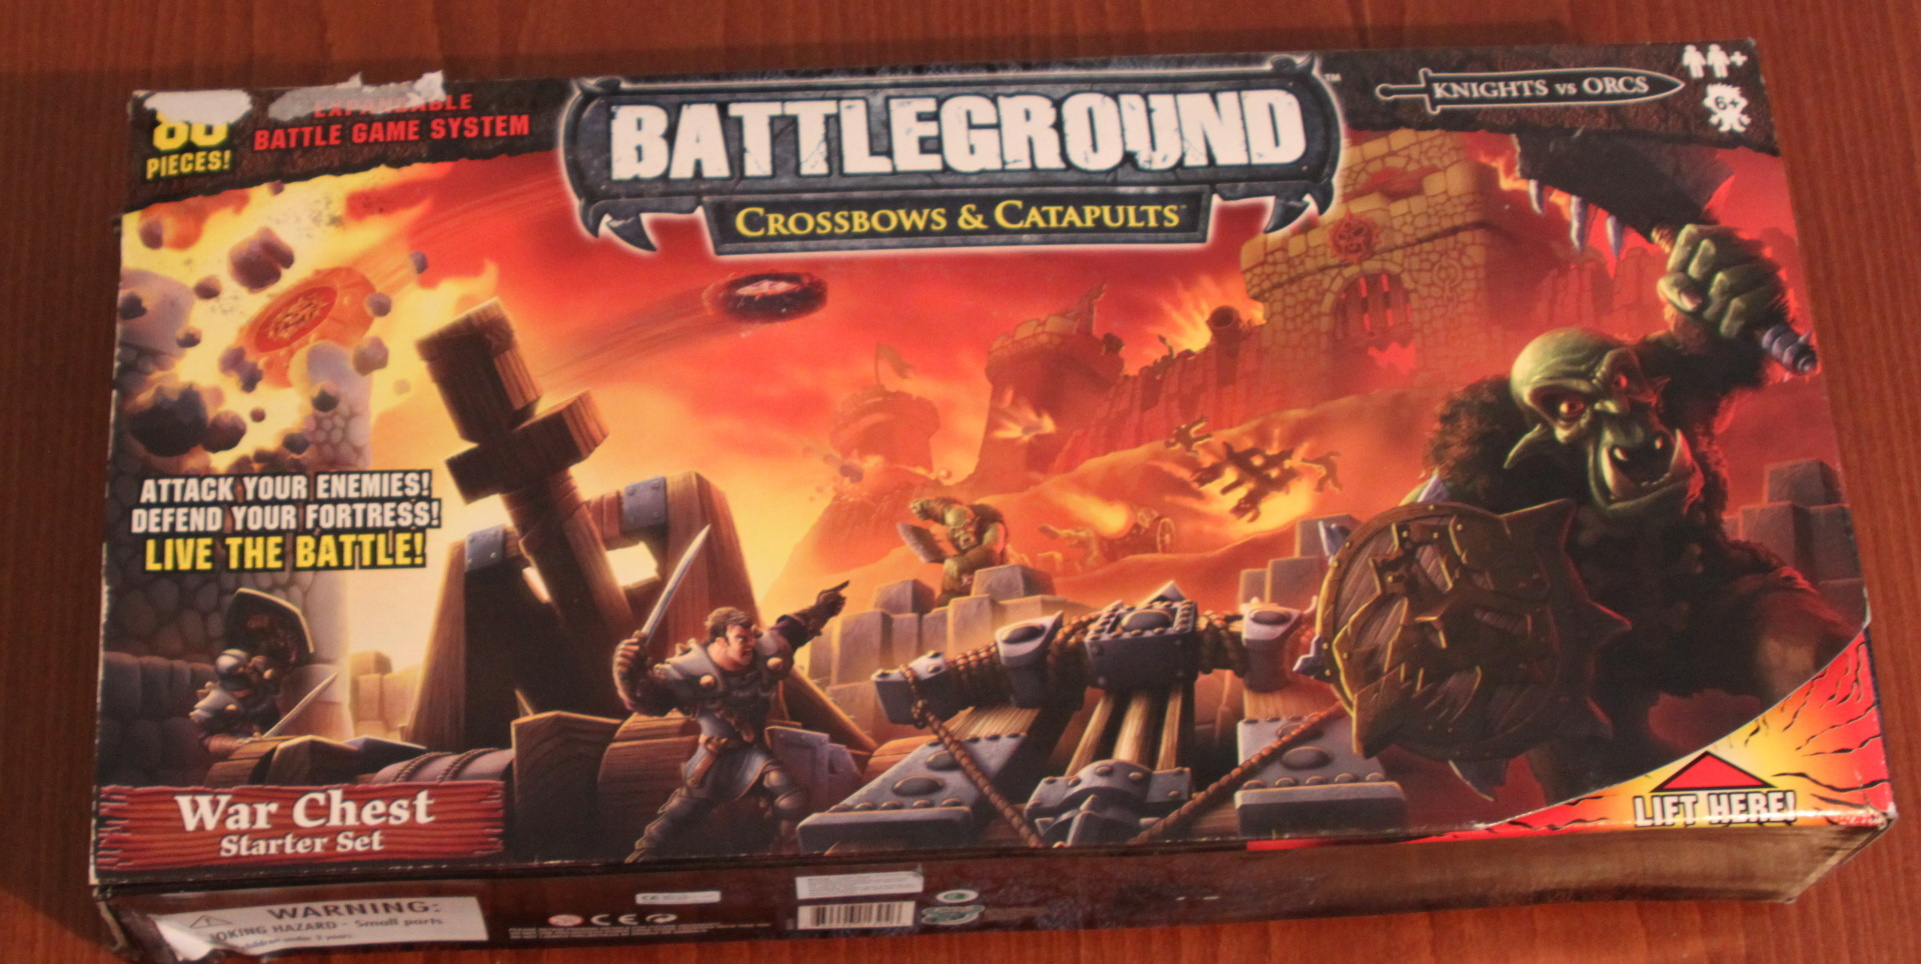 Battleground: Crossbows & Catapults War Chest Starter Set (2007)